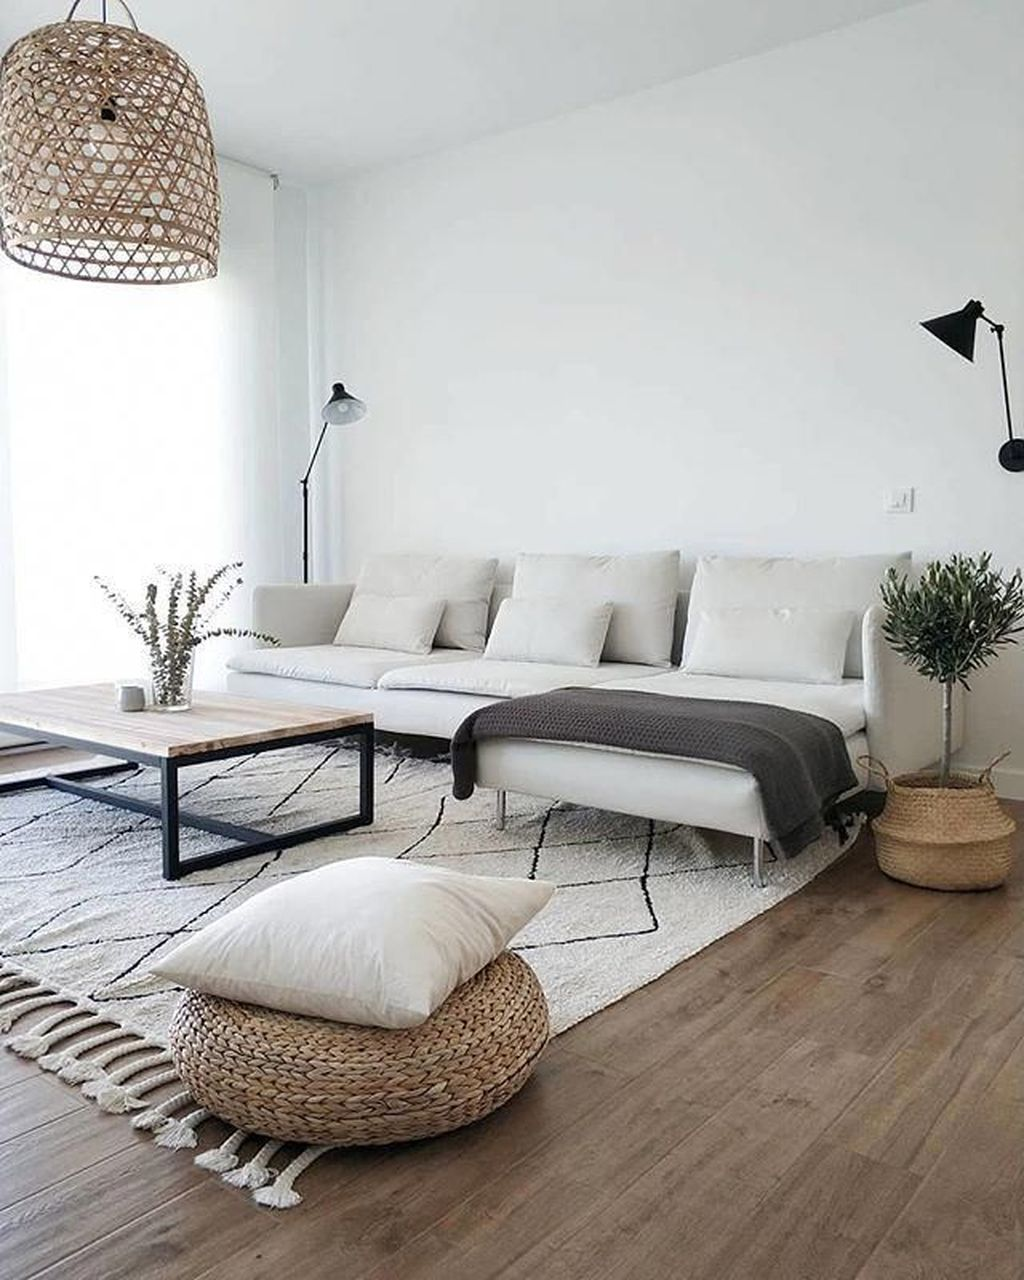 Best Scandinavian Interior Design Ideas For Small Space 16